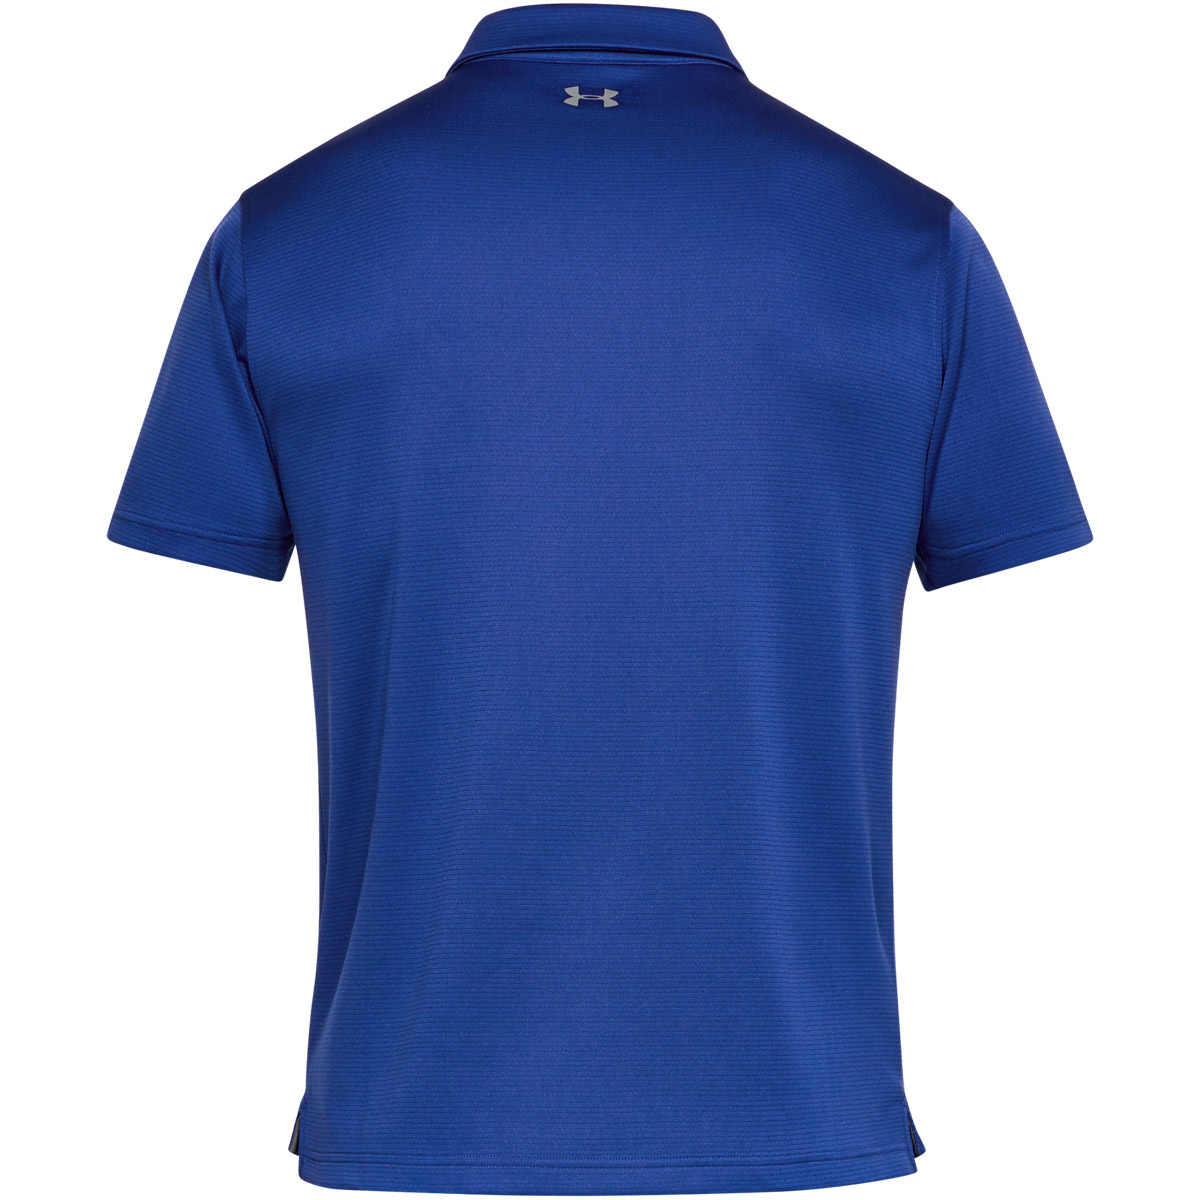 Under-Armour-Mens-Golf-Tech-Wicking-Textured-Soft-Light-Polo-Shirt thumbnail 31